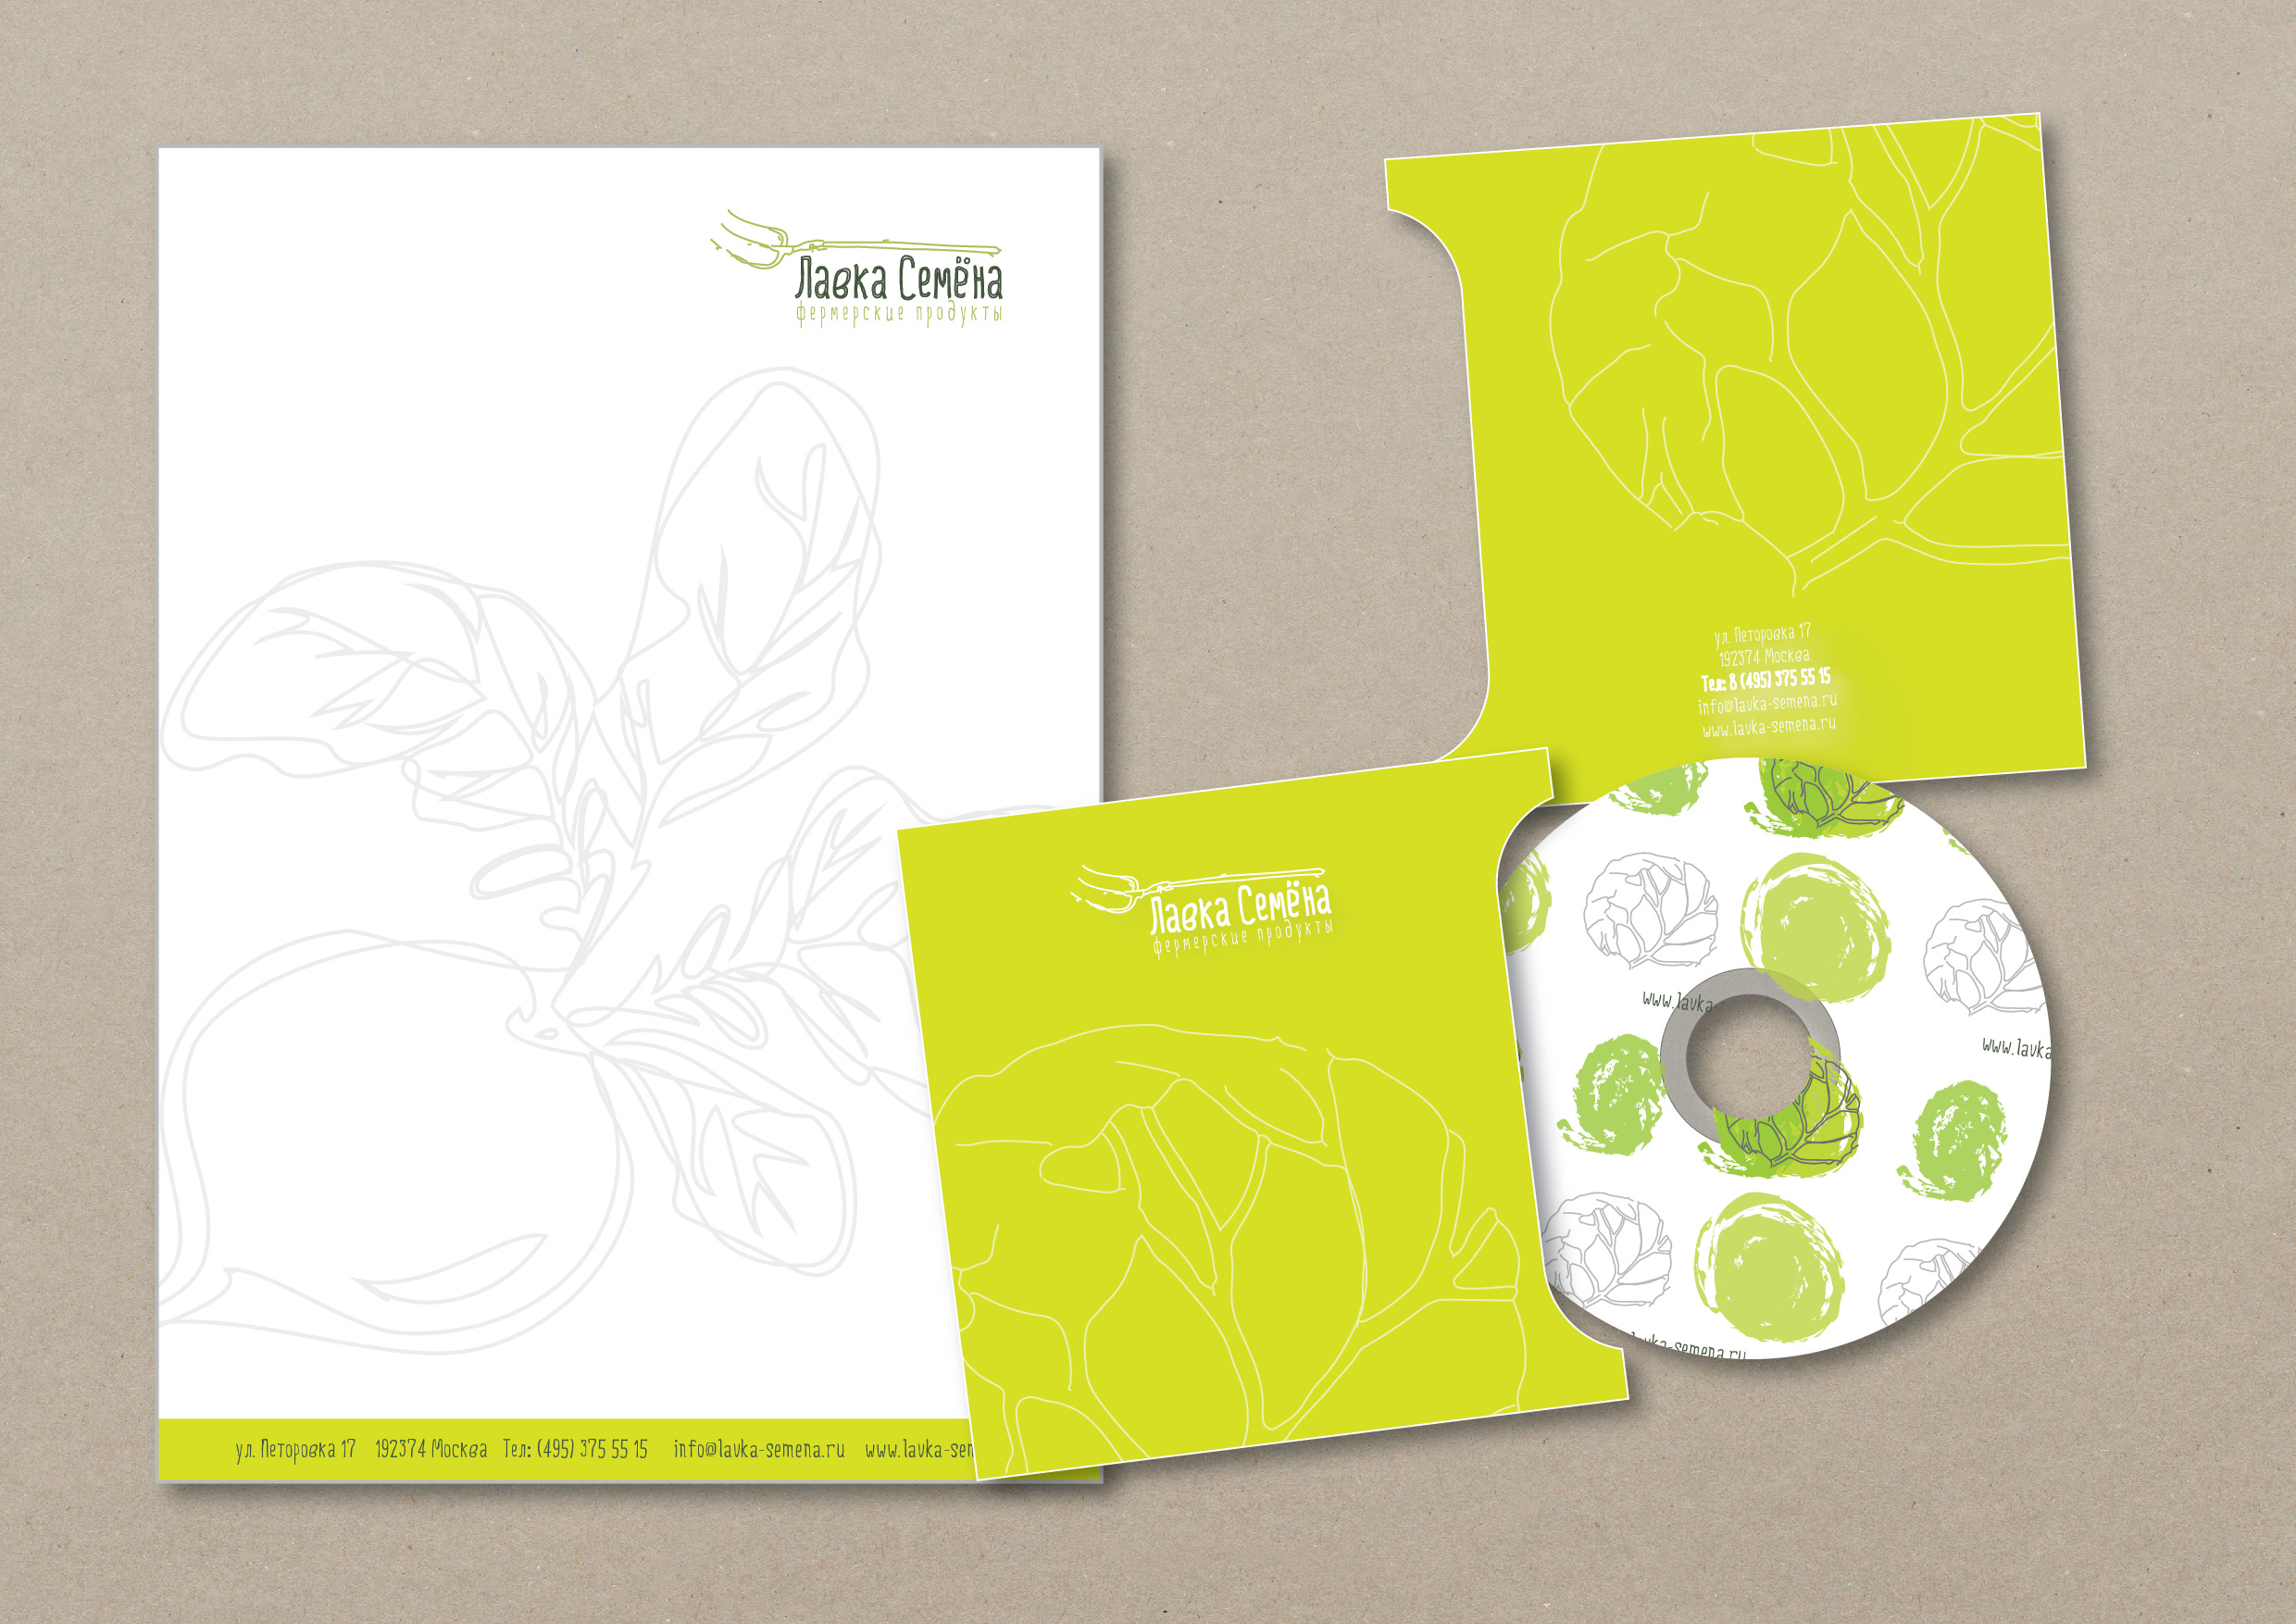 Letter template and disc